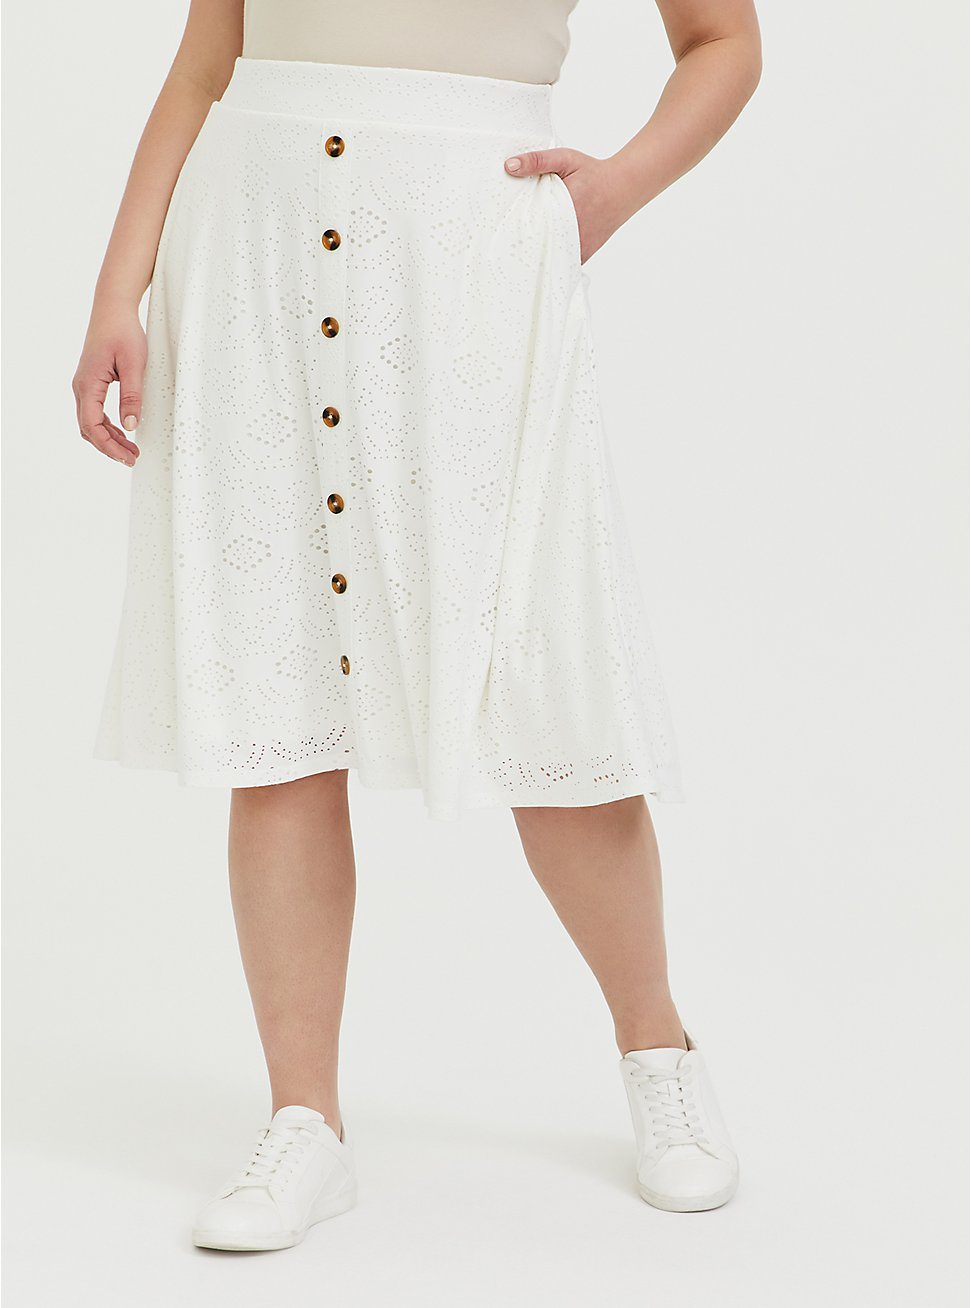 Ivory Eyelet Button Midi Skirt, CLOUD DANCER, hi-res